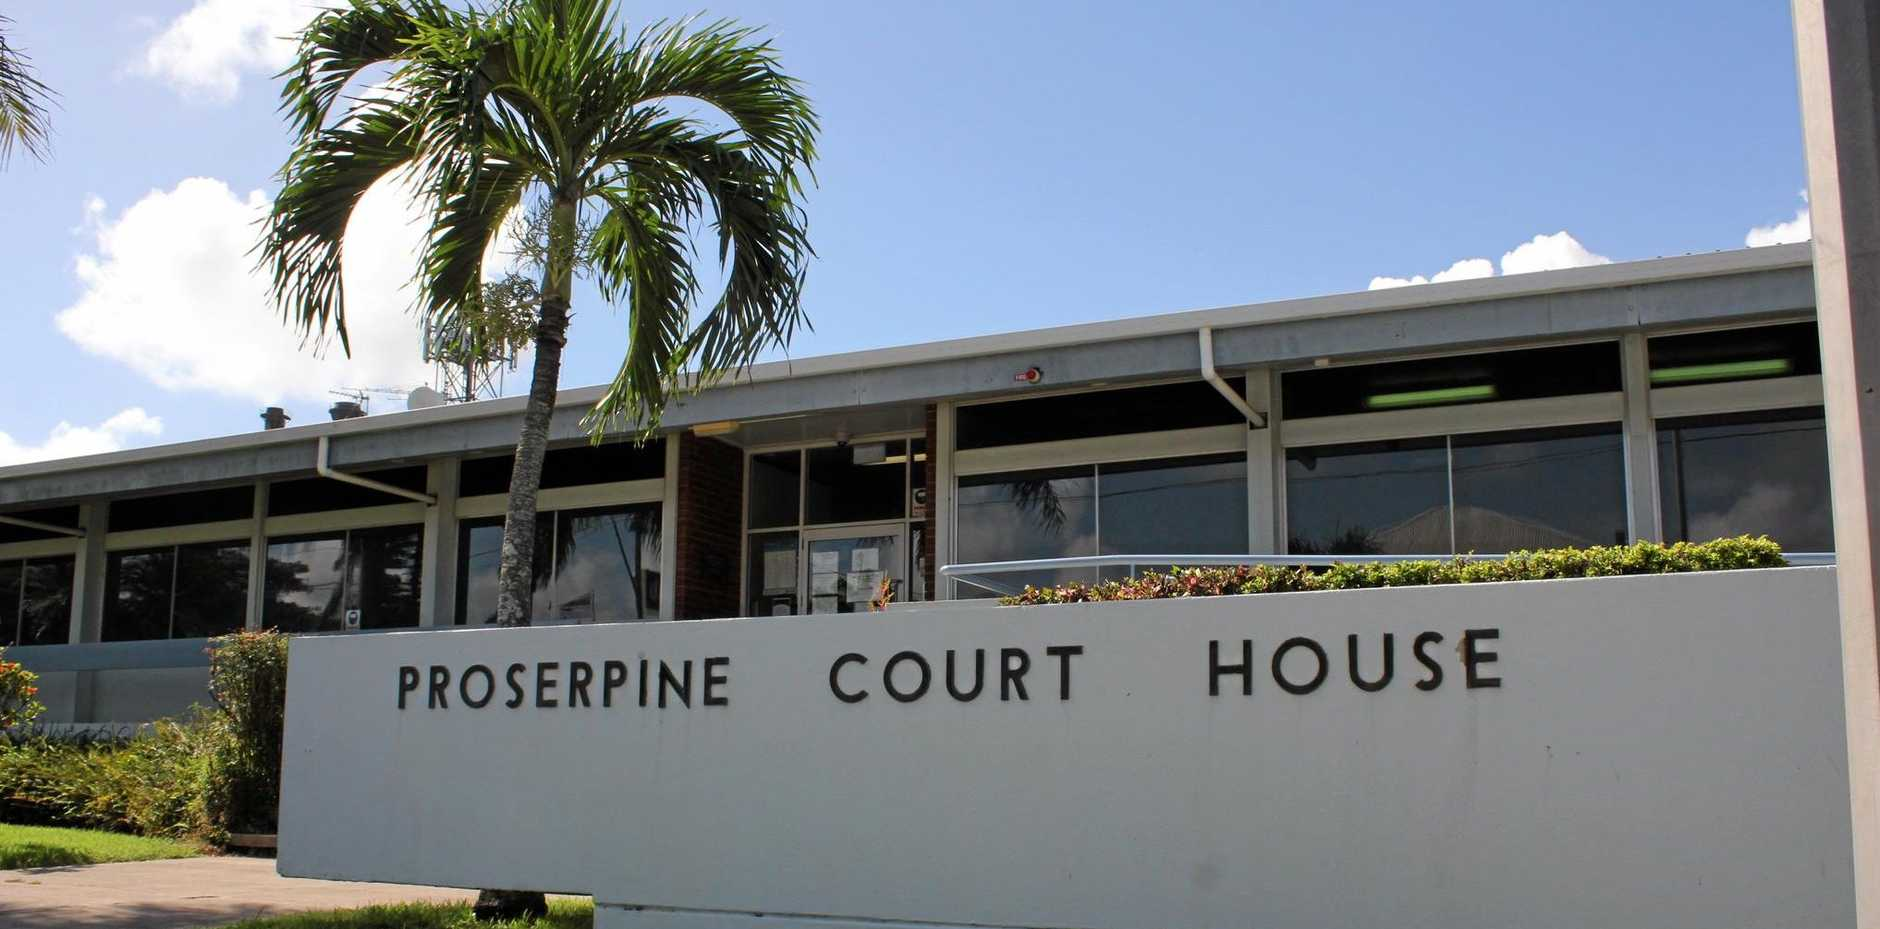 A man who was caught driving without a licence was given a three-month suspended prison sentence in Proserpine Magistrates Court.